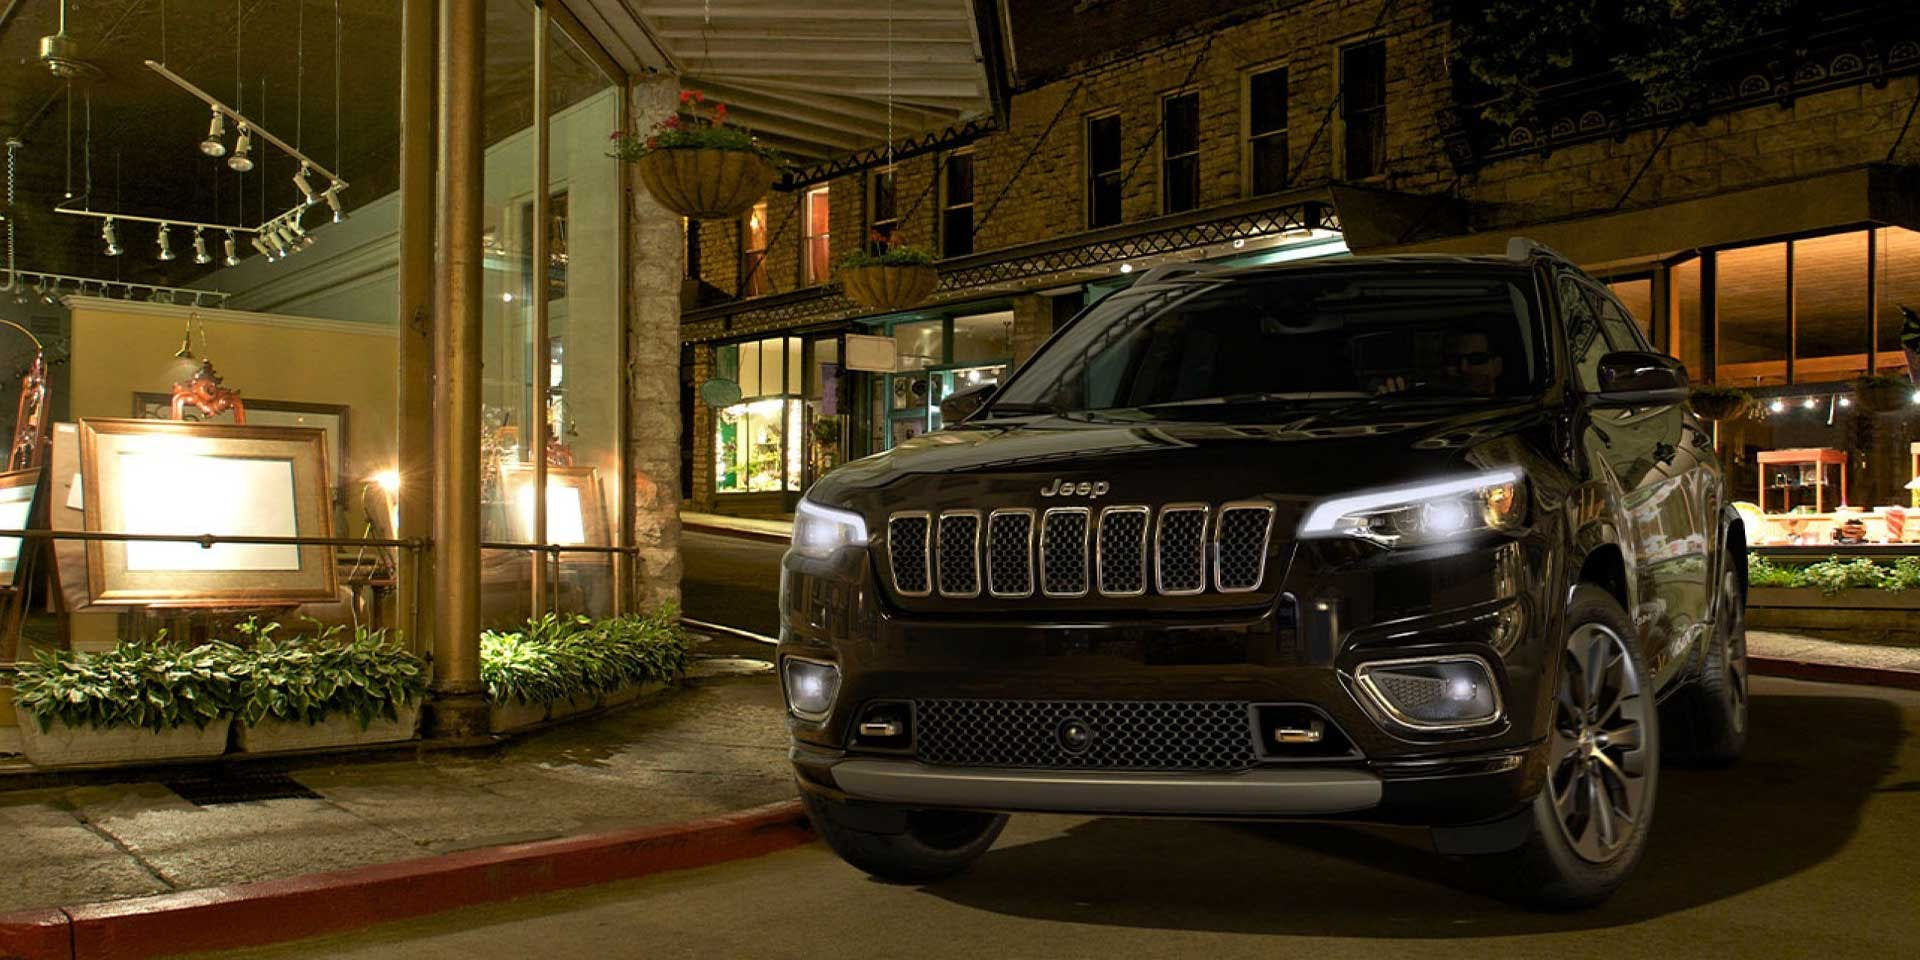 K4298 2020 Jeep Cherokee Pennsylvania dealership Diehl Automotive butler, pa Chrysler dodge jeep ram diehl of butler lease specials drive forward employee pricing plus Pacifica family pricing new vehicle specials covid19 coronavirus